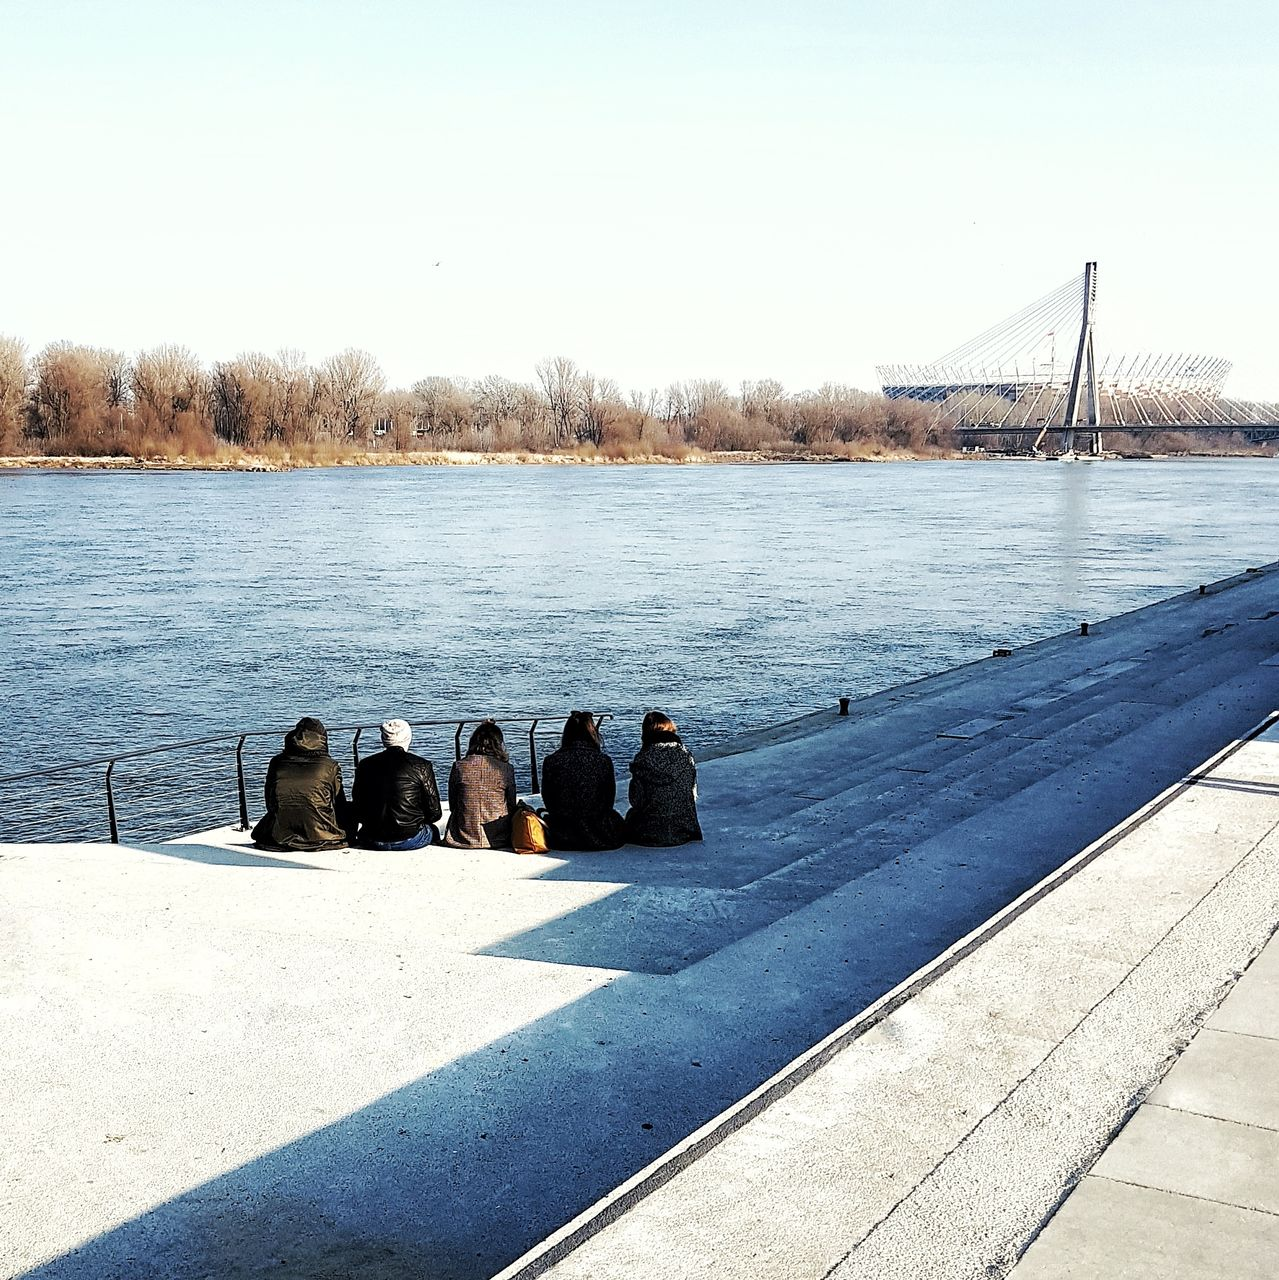 REAR VIEW OF PEOPLE SITTING BY LAKE AGAINST SKY